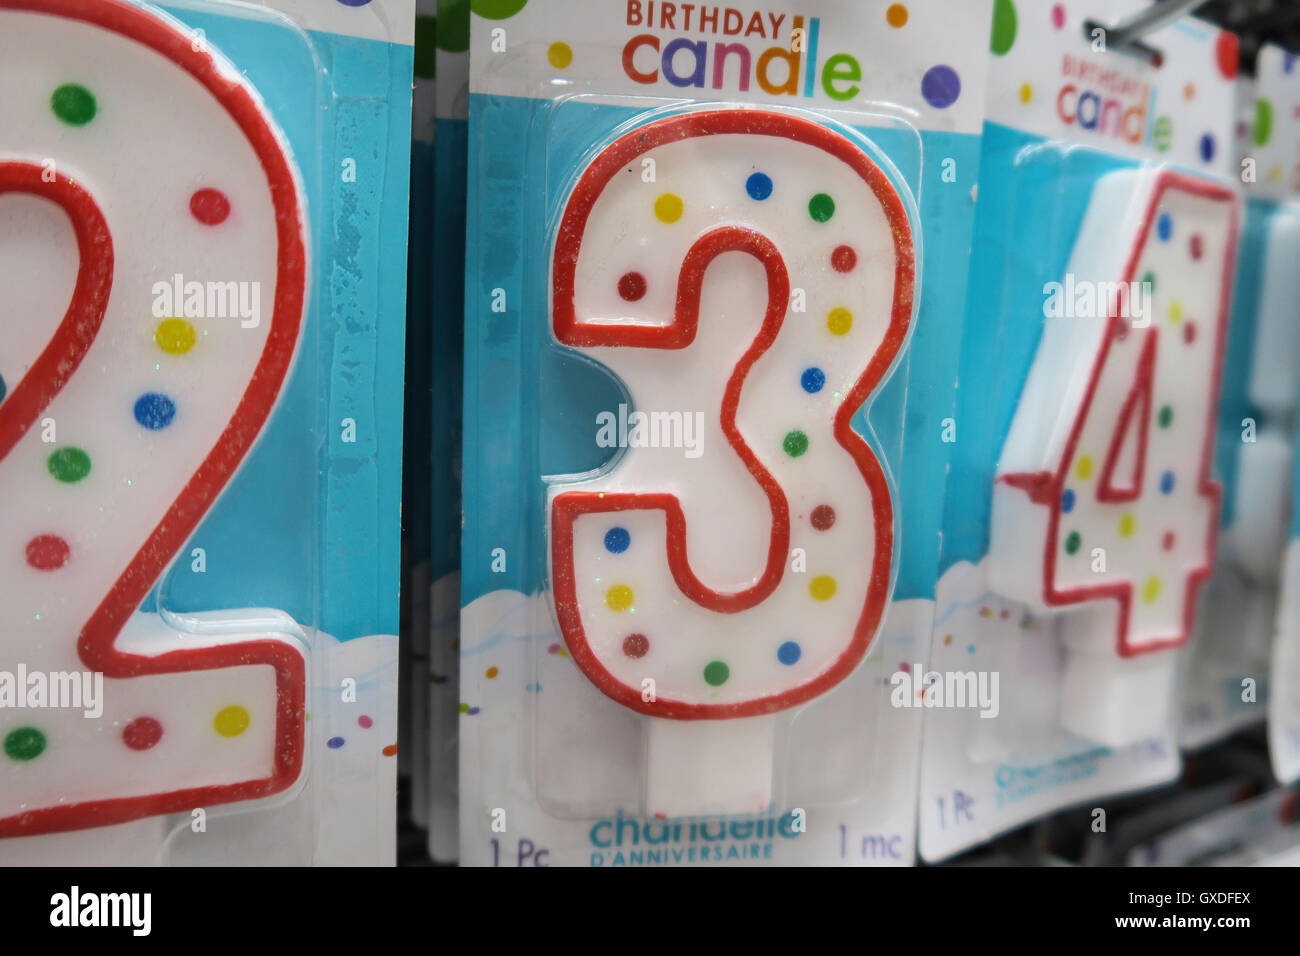 Number 3 Birthday Candle Party City NYC